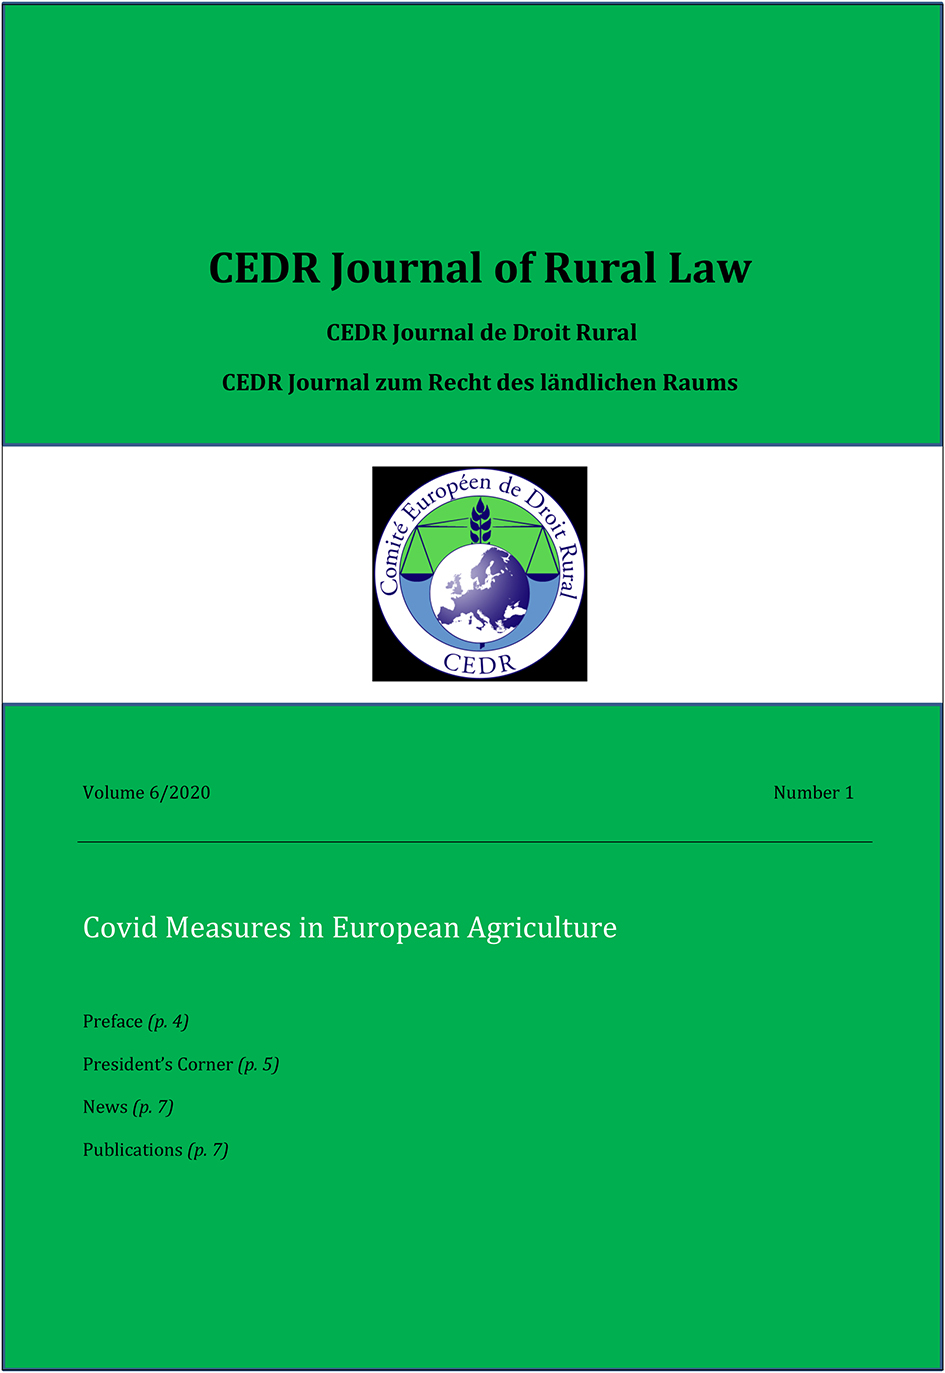 Journal of Rural Law Vol.6 No.1, 2020